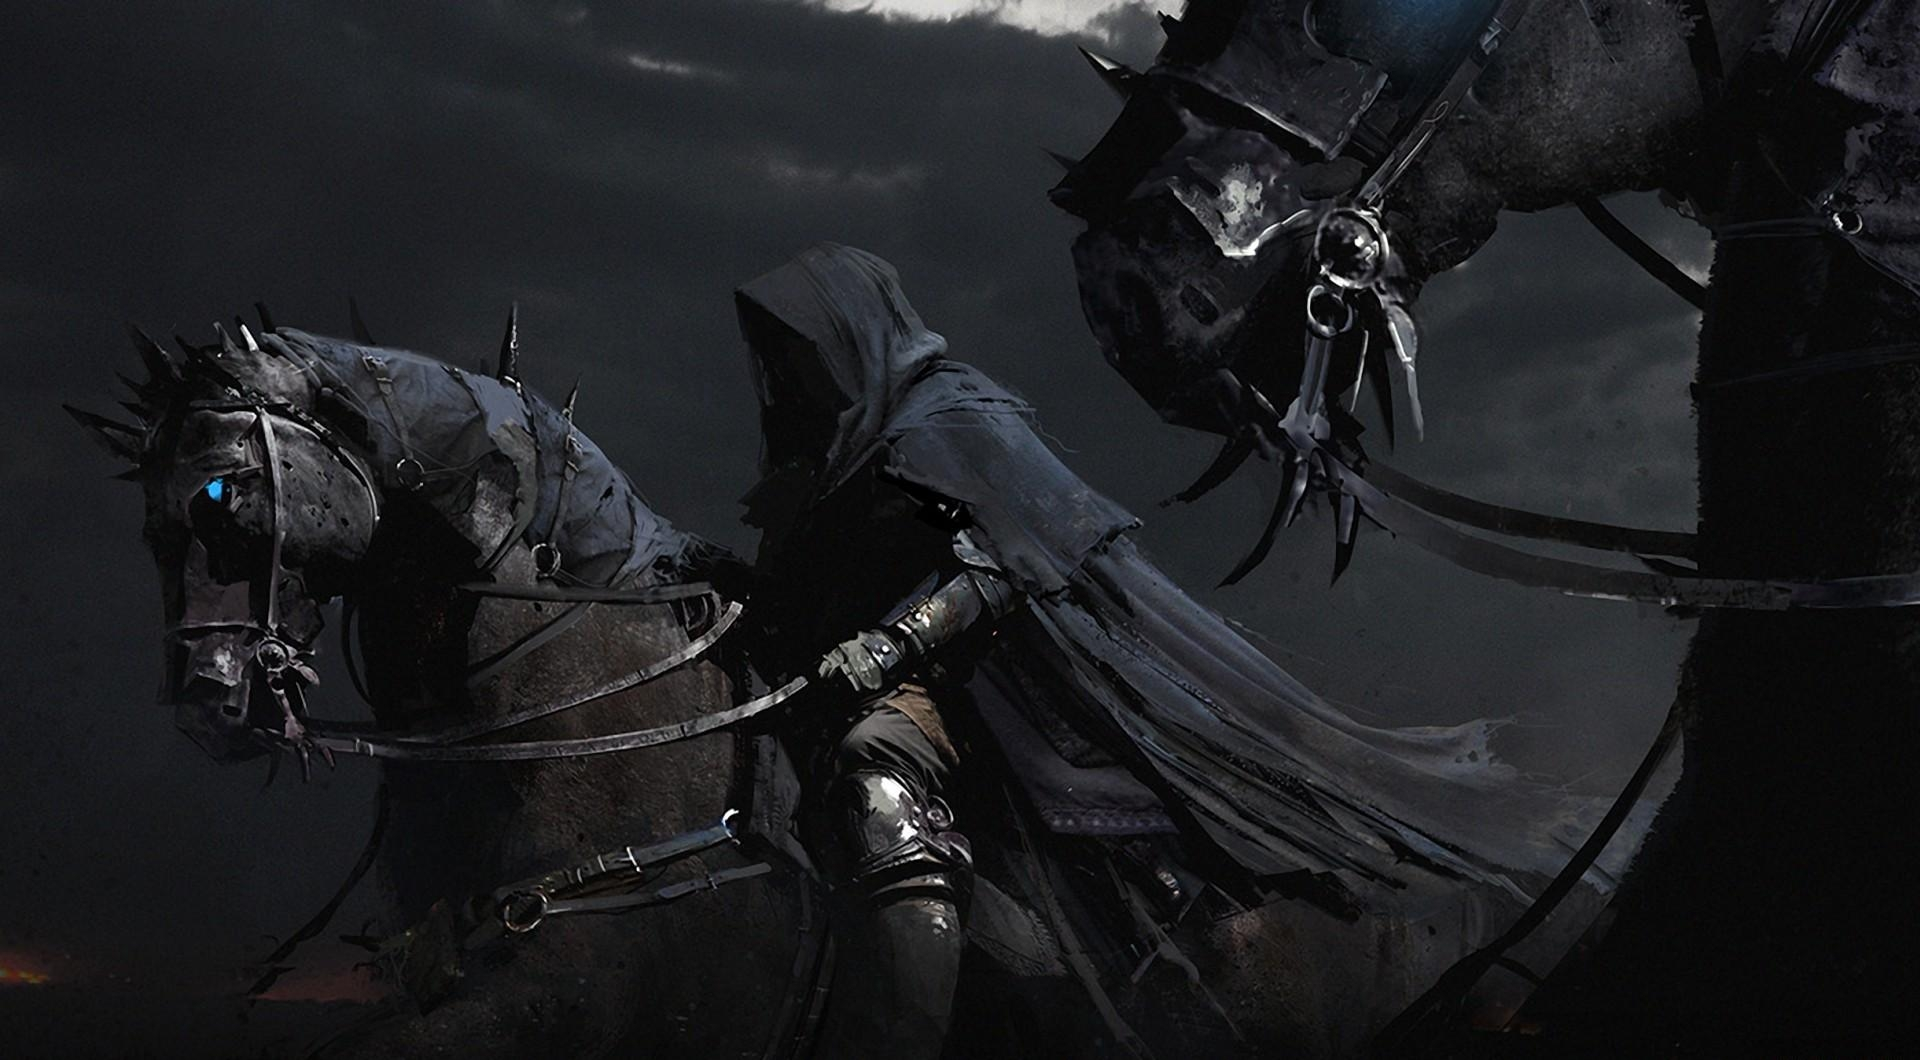 137492 download wallpaper Fantasy, Horses, Black Riders, Night, Cape screensavers and pictures for free